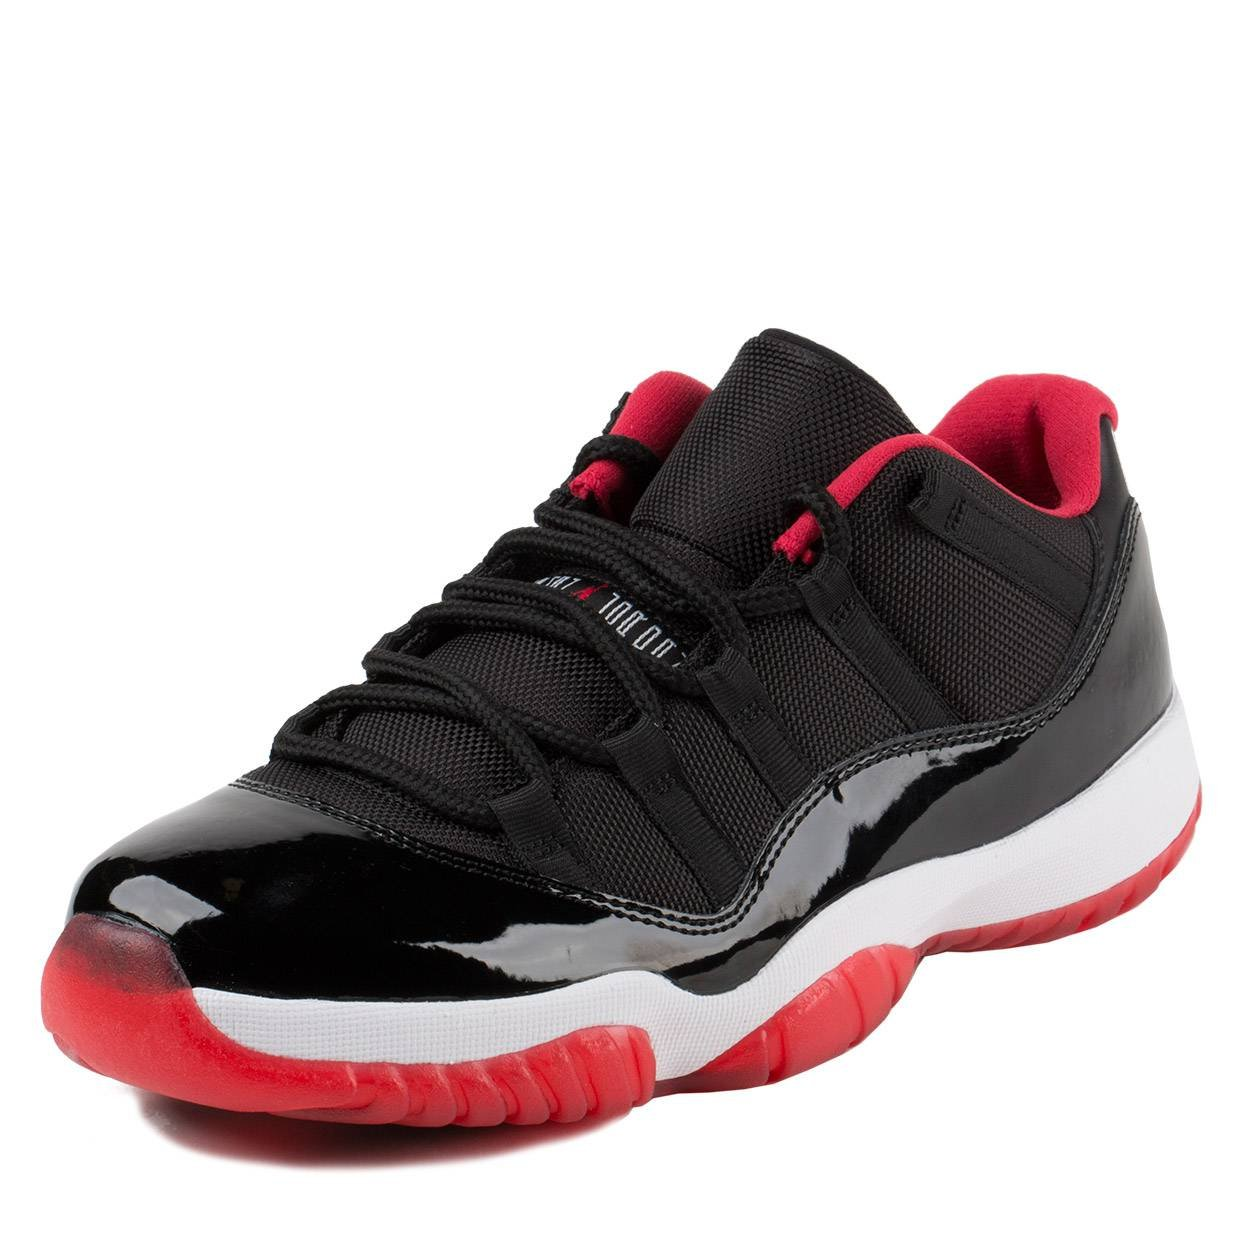 online store 1e3a5 76880 Galleon - Nike Mens Air Jordan 11 Retro Low Bred Black True Red-White  Synthetic Size 14